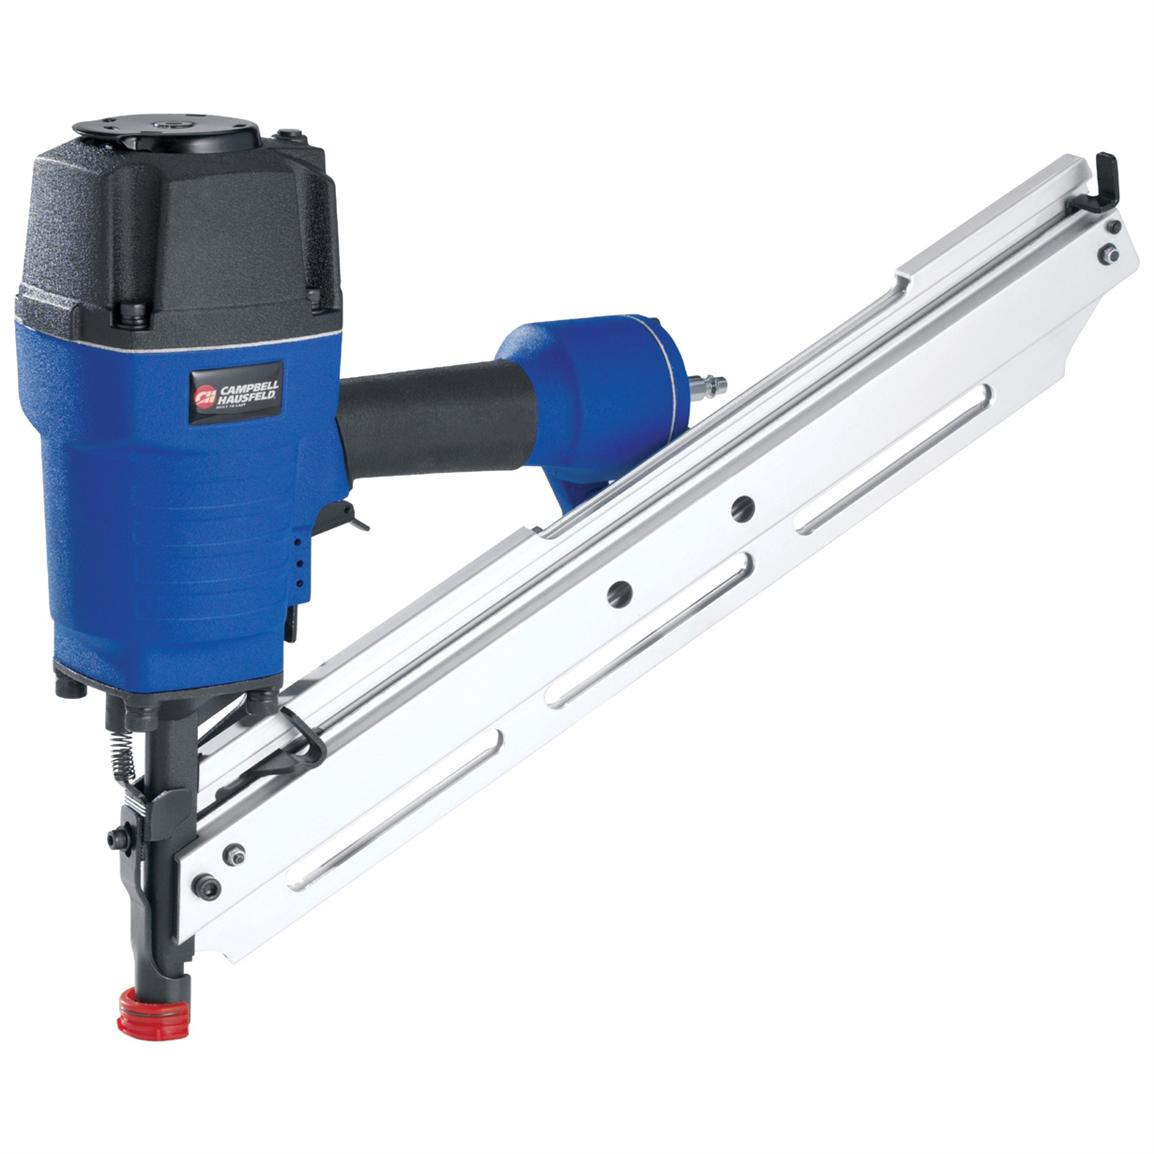 "Campbell Hausfeld® 34° 3 1/2"" Clipped-head Framing Nailer"